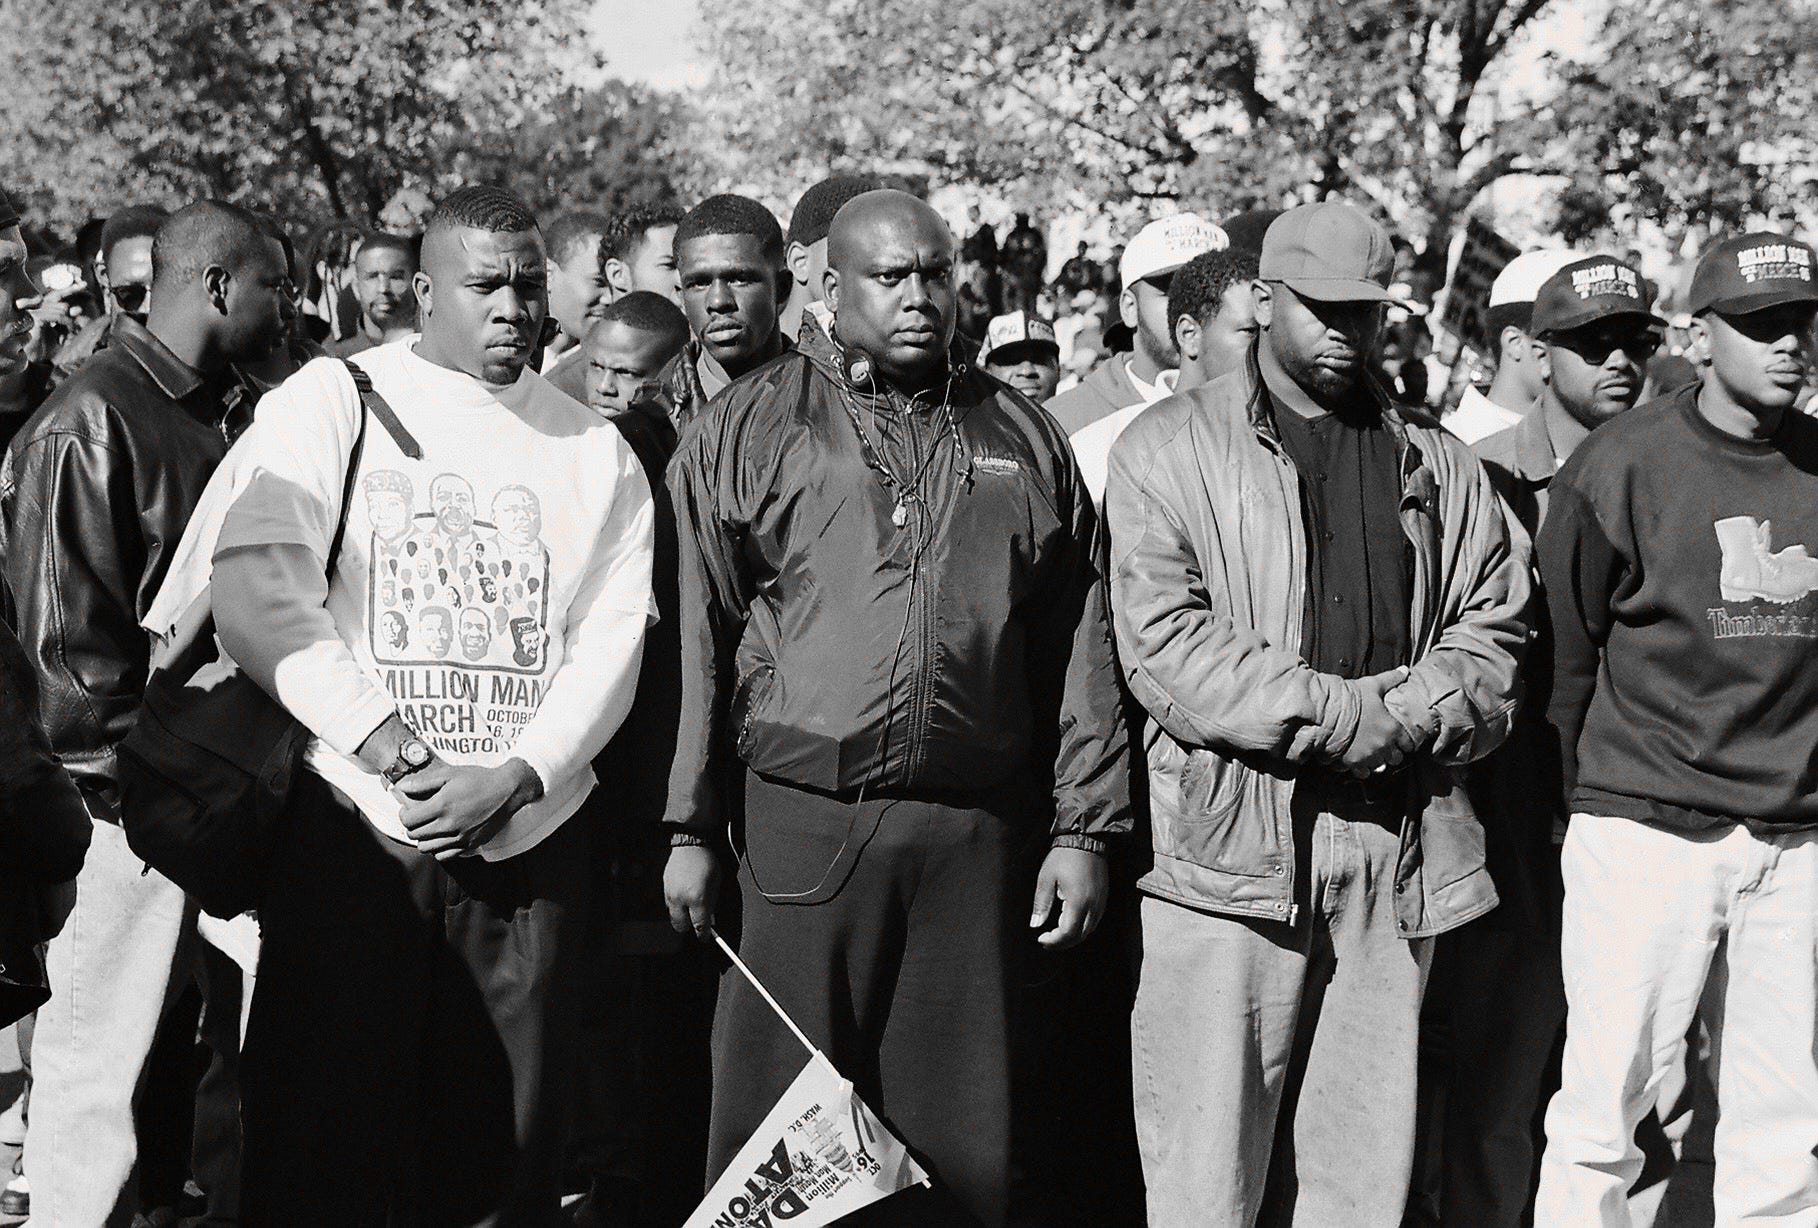 """Demonstrators attend the Million Man March in October 1995. Rod Terry, a Washington, D.C., prosecutor at the time, took the day off work to document the Million Man March with his camera. He titled this photo """"Seriousness of Purpose."""""""